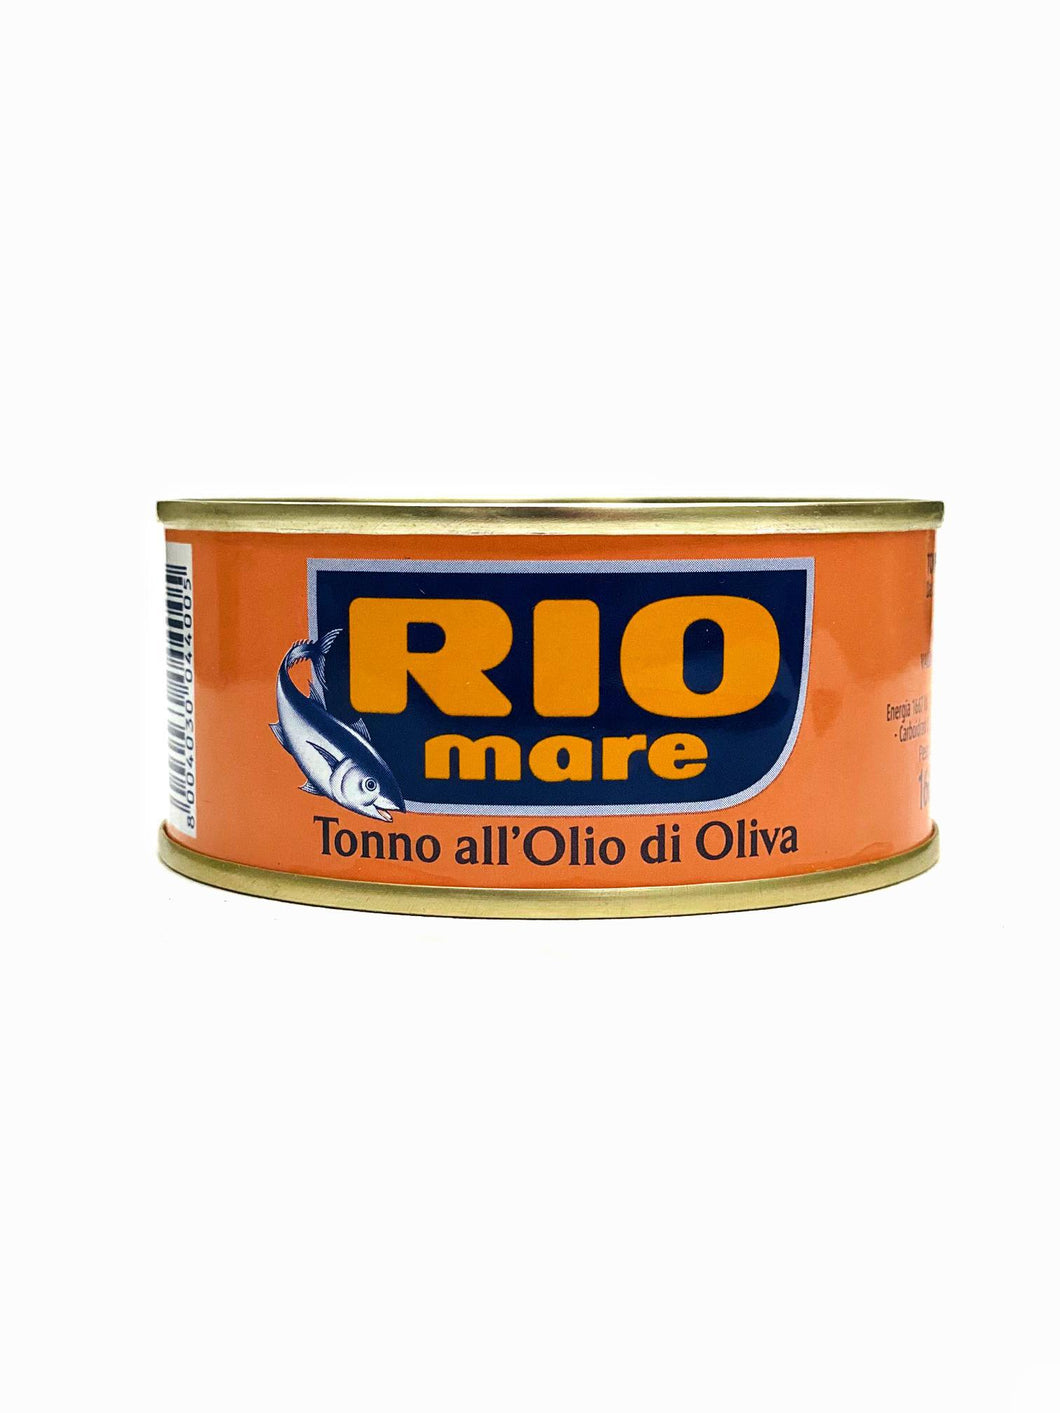 Rio Mare Tuna in Olive Oil, 5.6oz